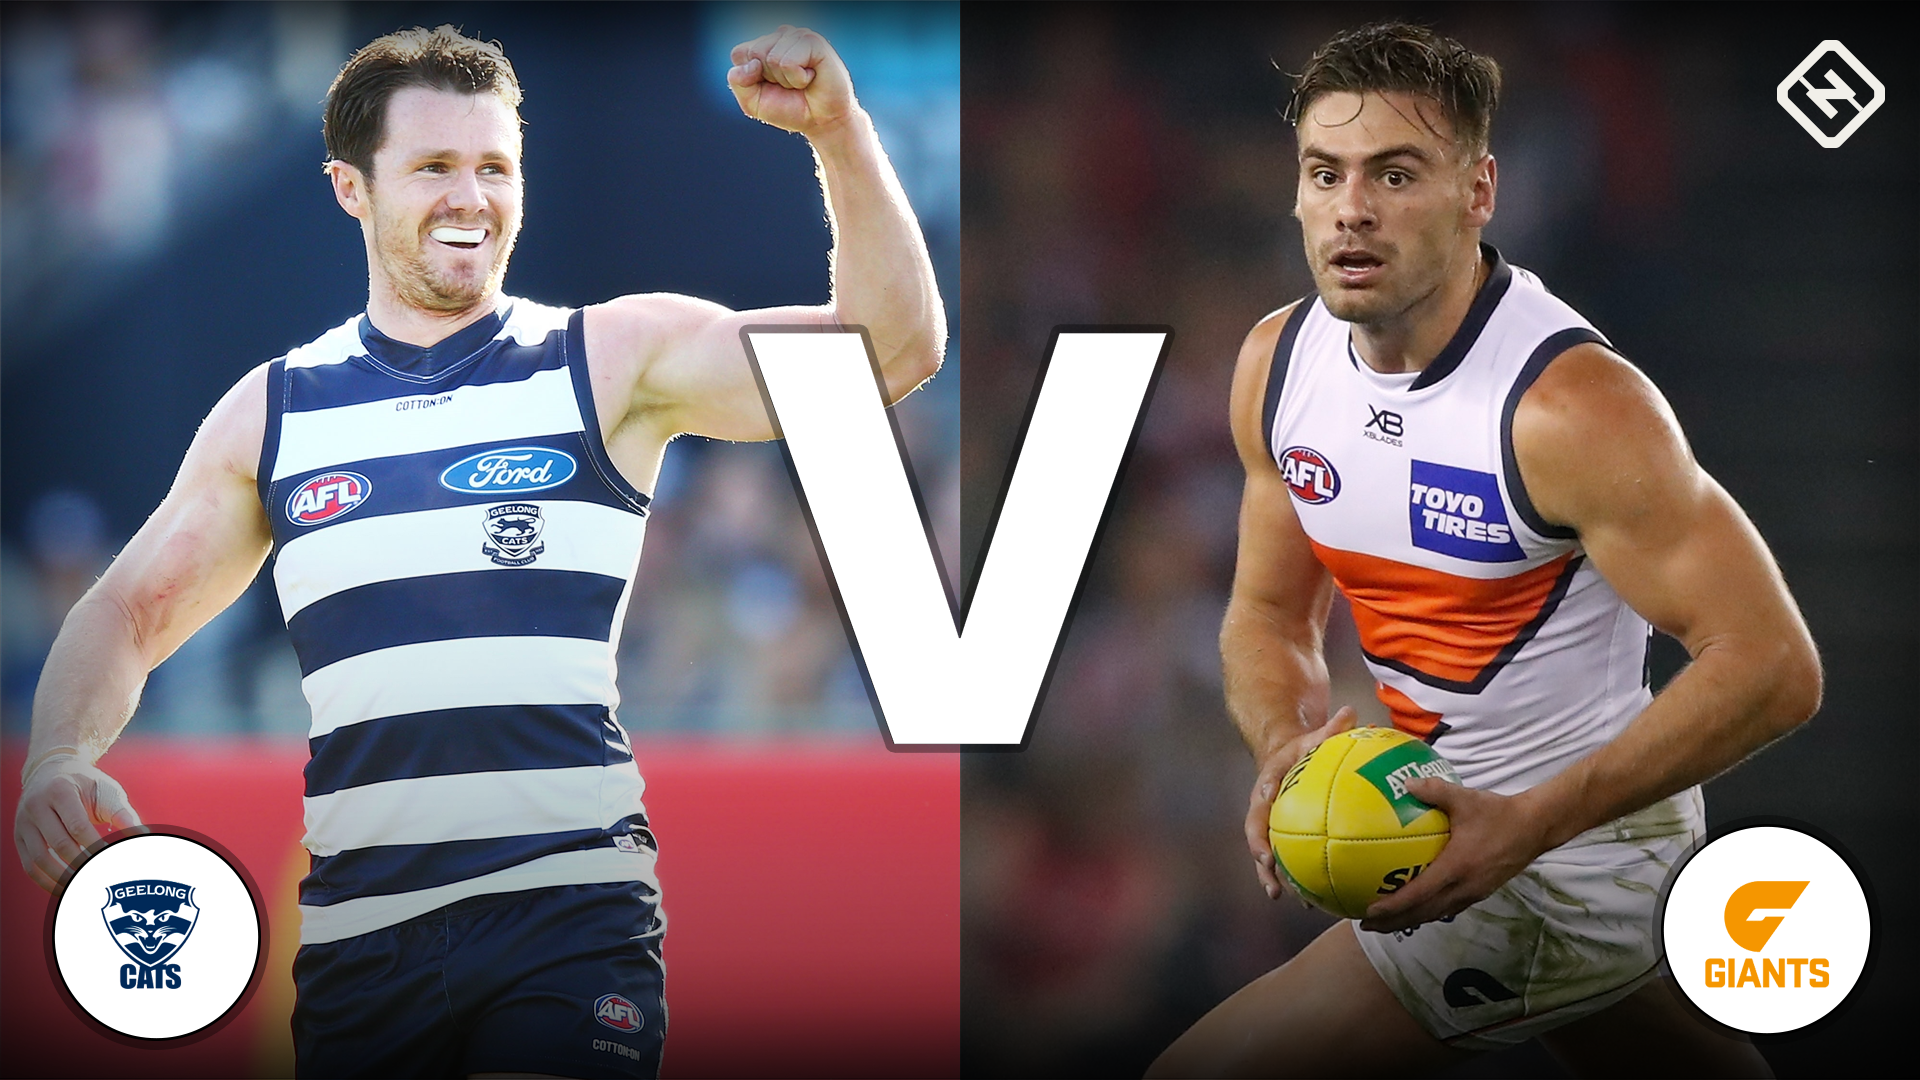 Geelong Cats V Gws Giants Full Preview Teams Odds And How To Watch Friday Night Afl Action Sporting News Australia